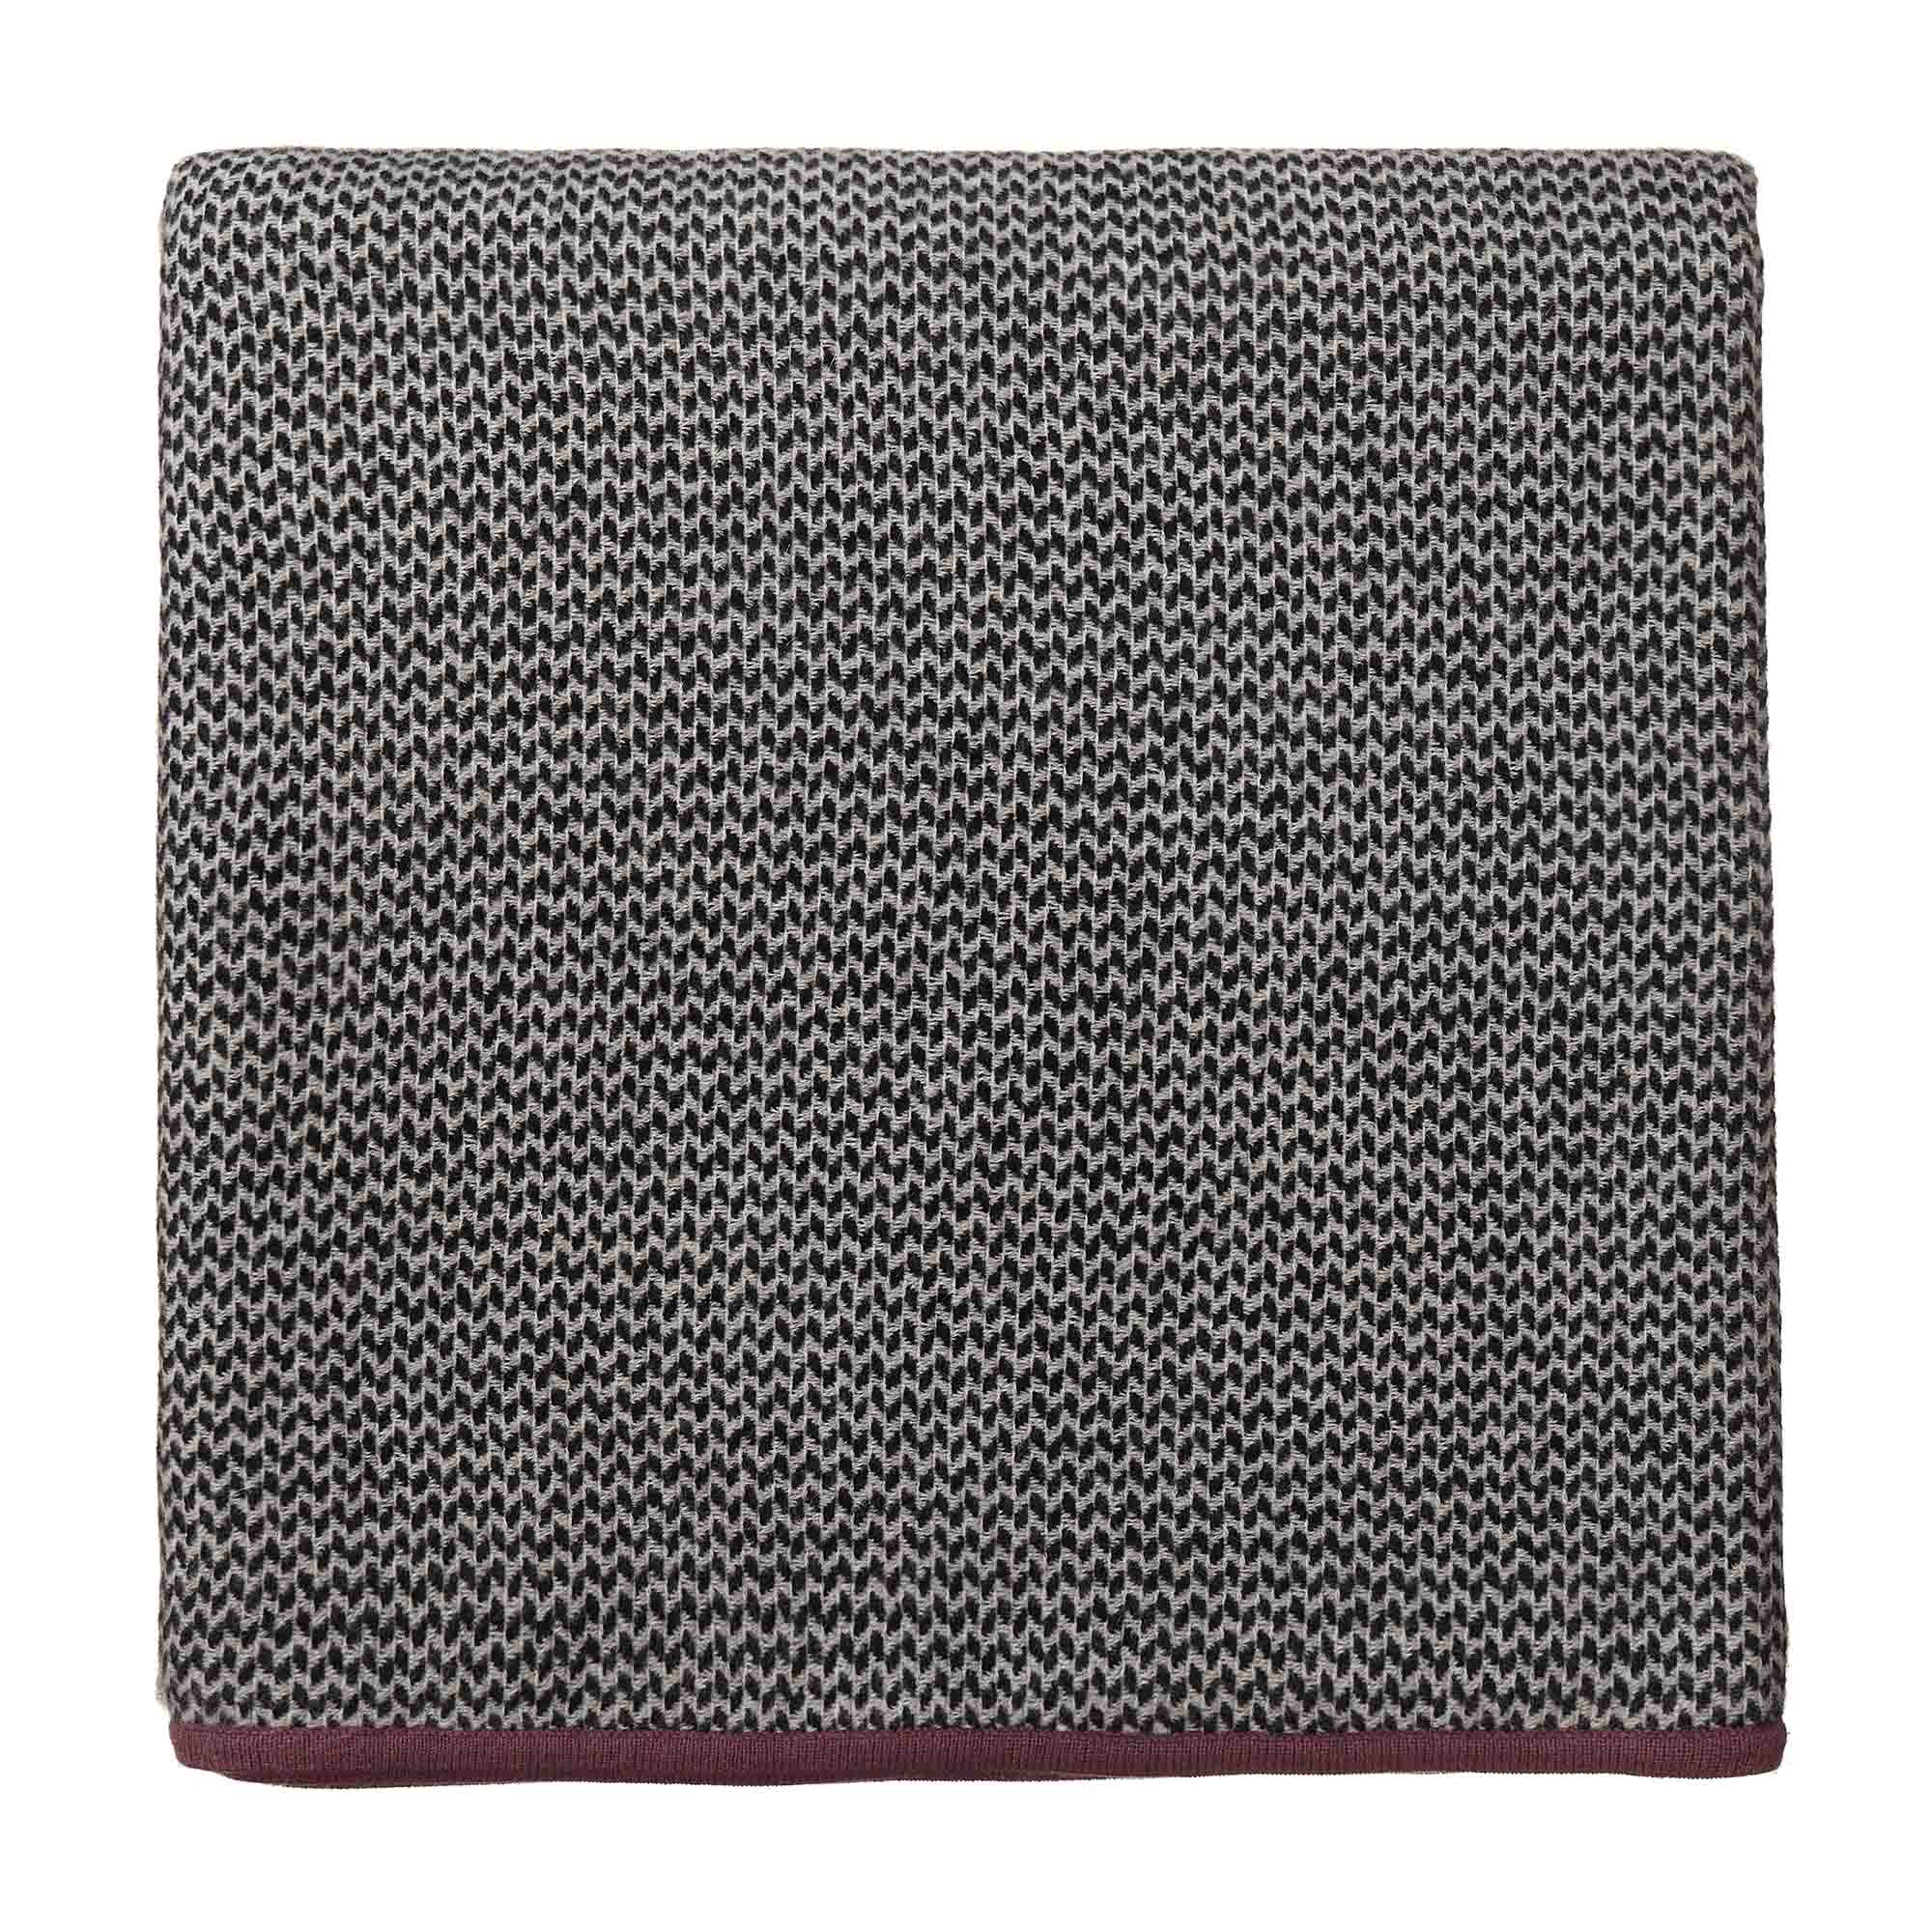 Foligno Cashmere Blanket black & cream & raspberry rose, 100% cashmere wool